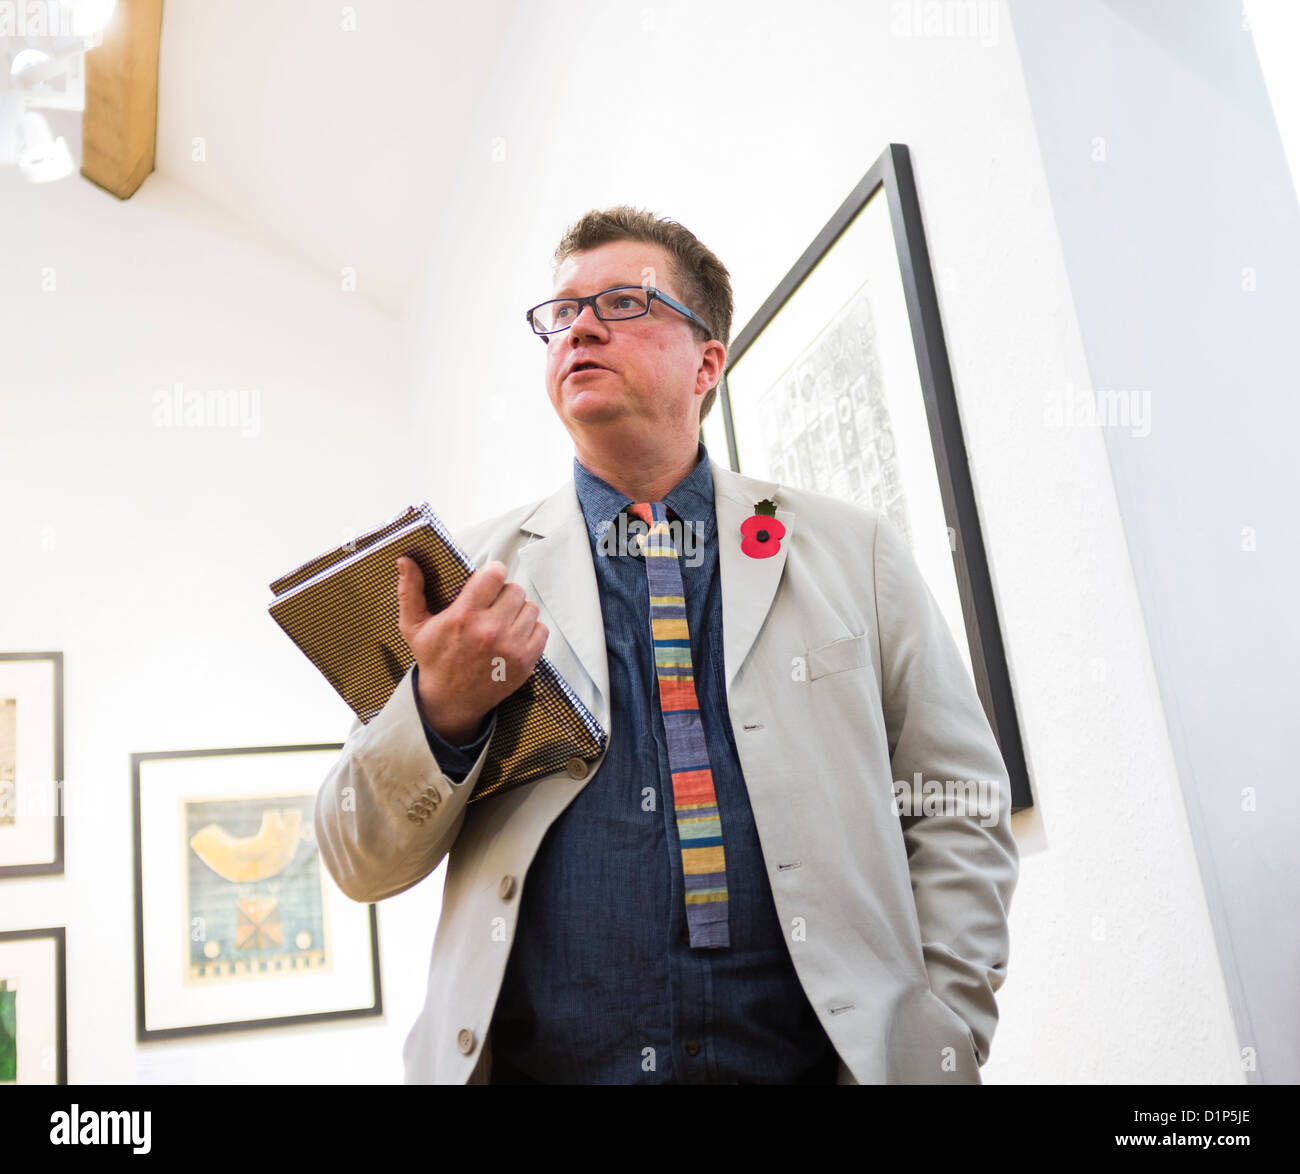 Printemaker PAUL CROFT at the opening of '30 Years of Drawings and Prints', Museum of Modern Art (MoMA) - Stock Image